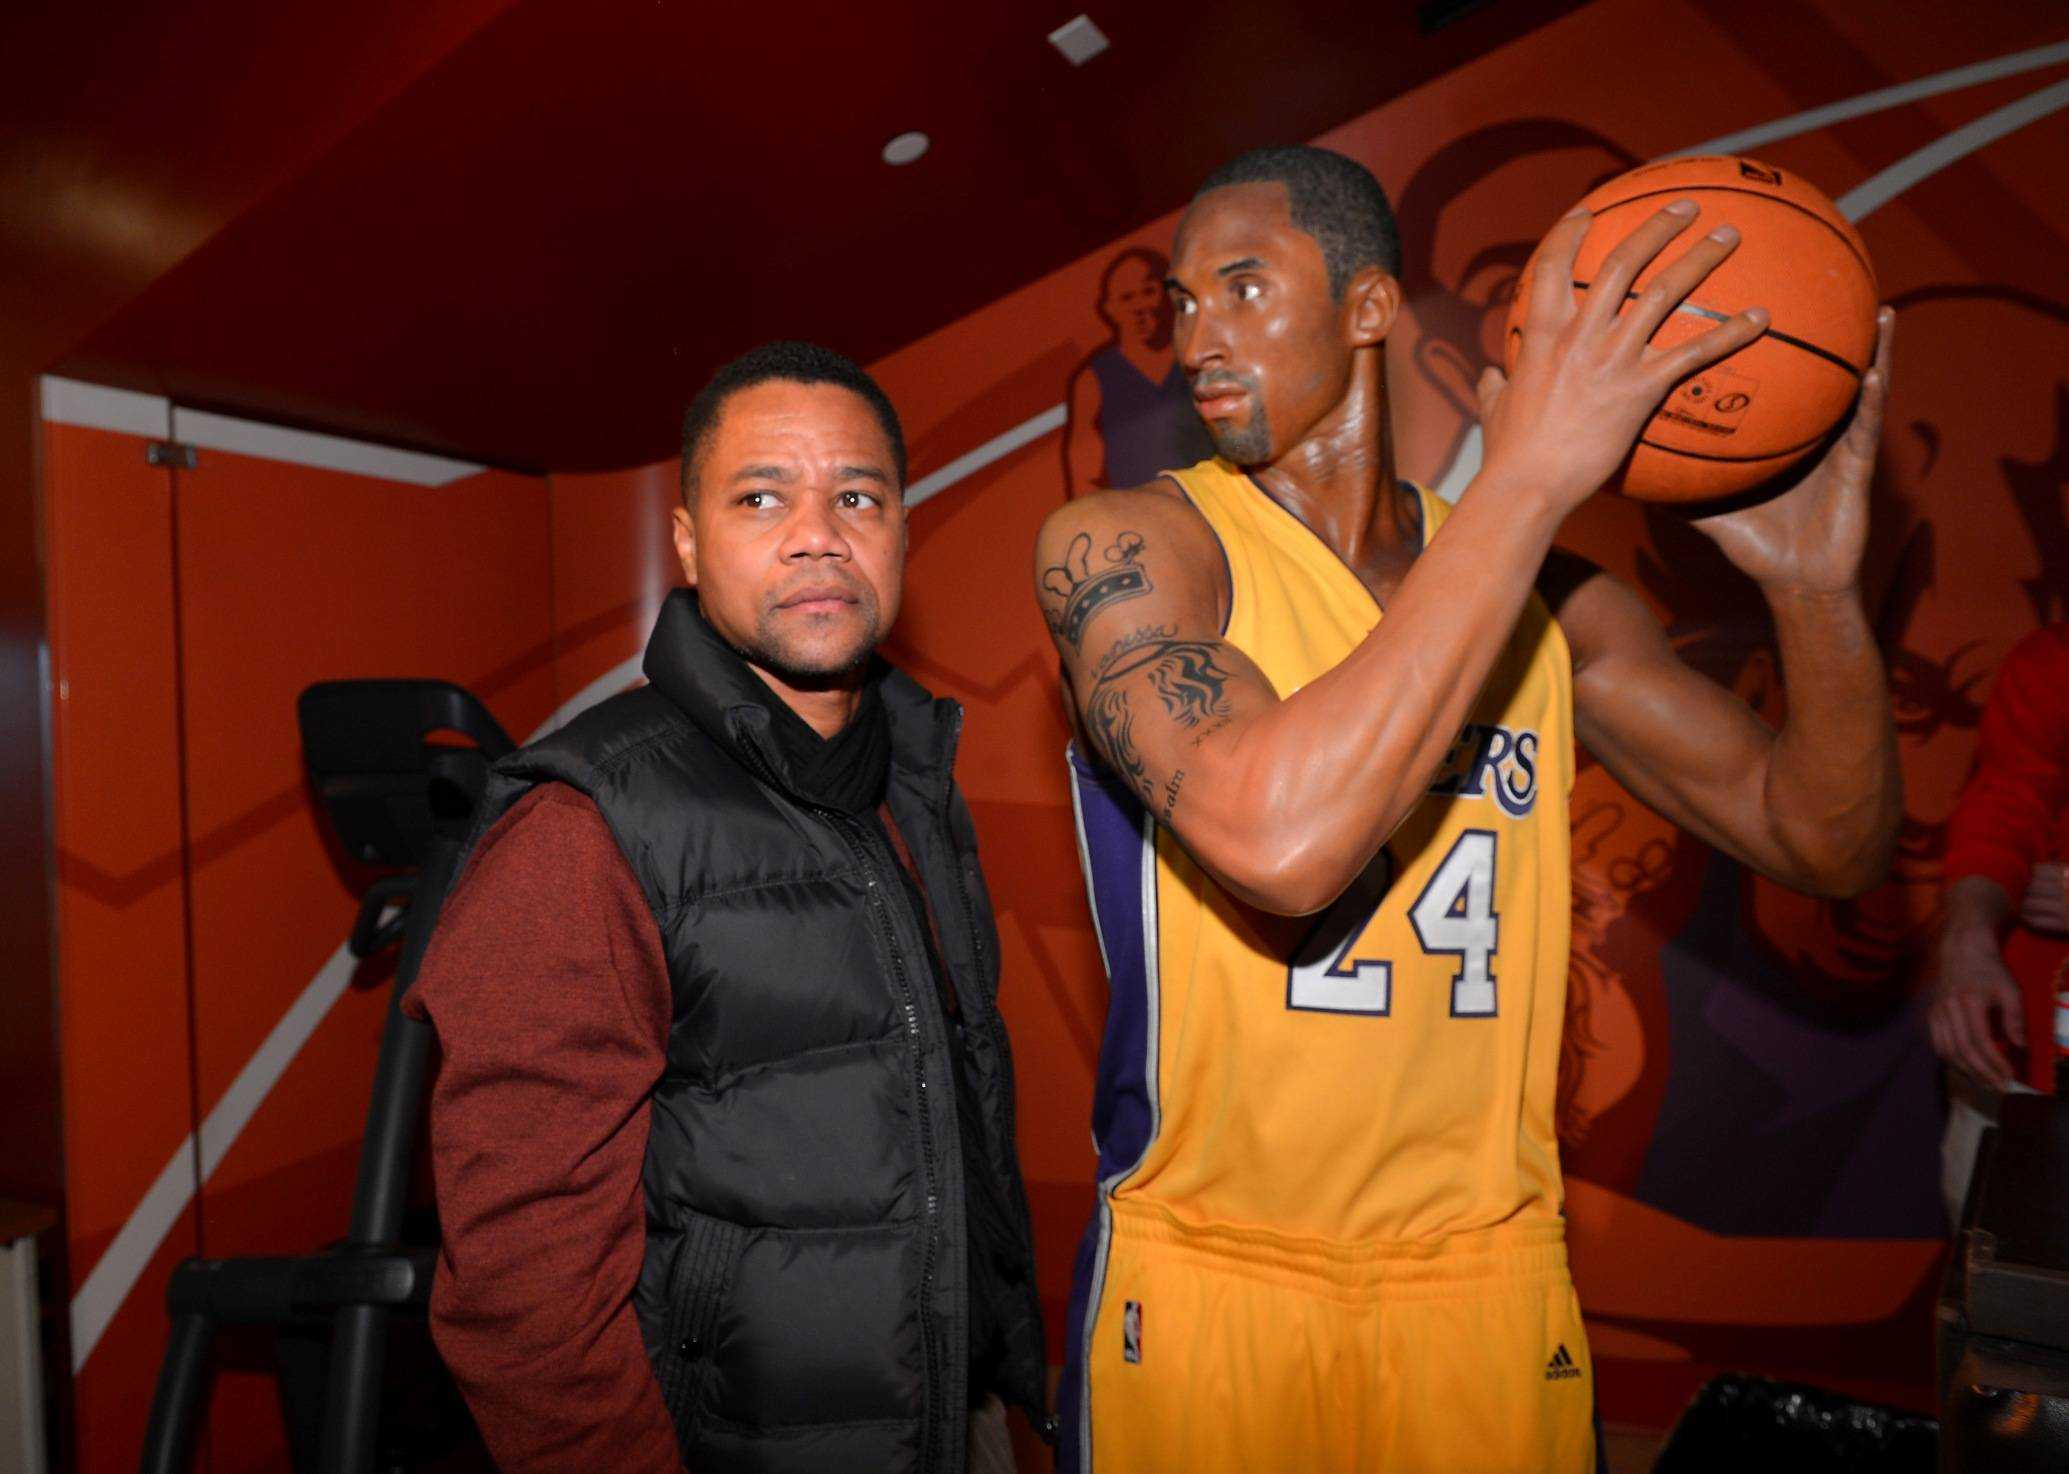 Cuba Gooding Jr taking a pointer of Kobe Bryant Wax Figure